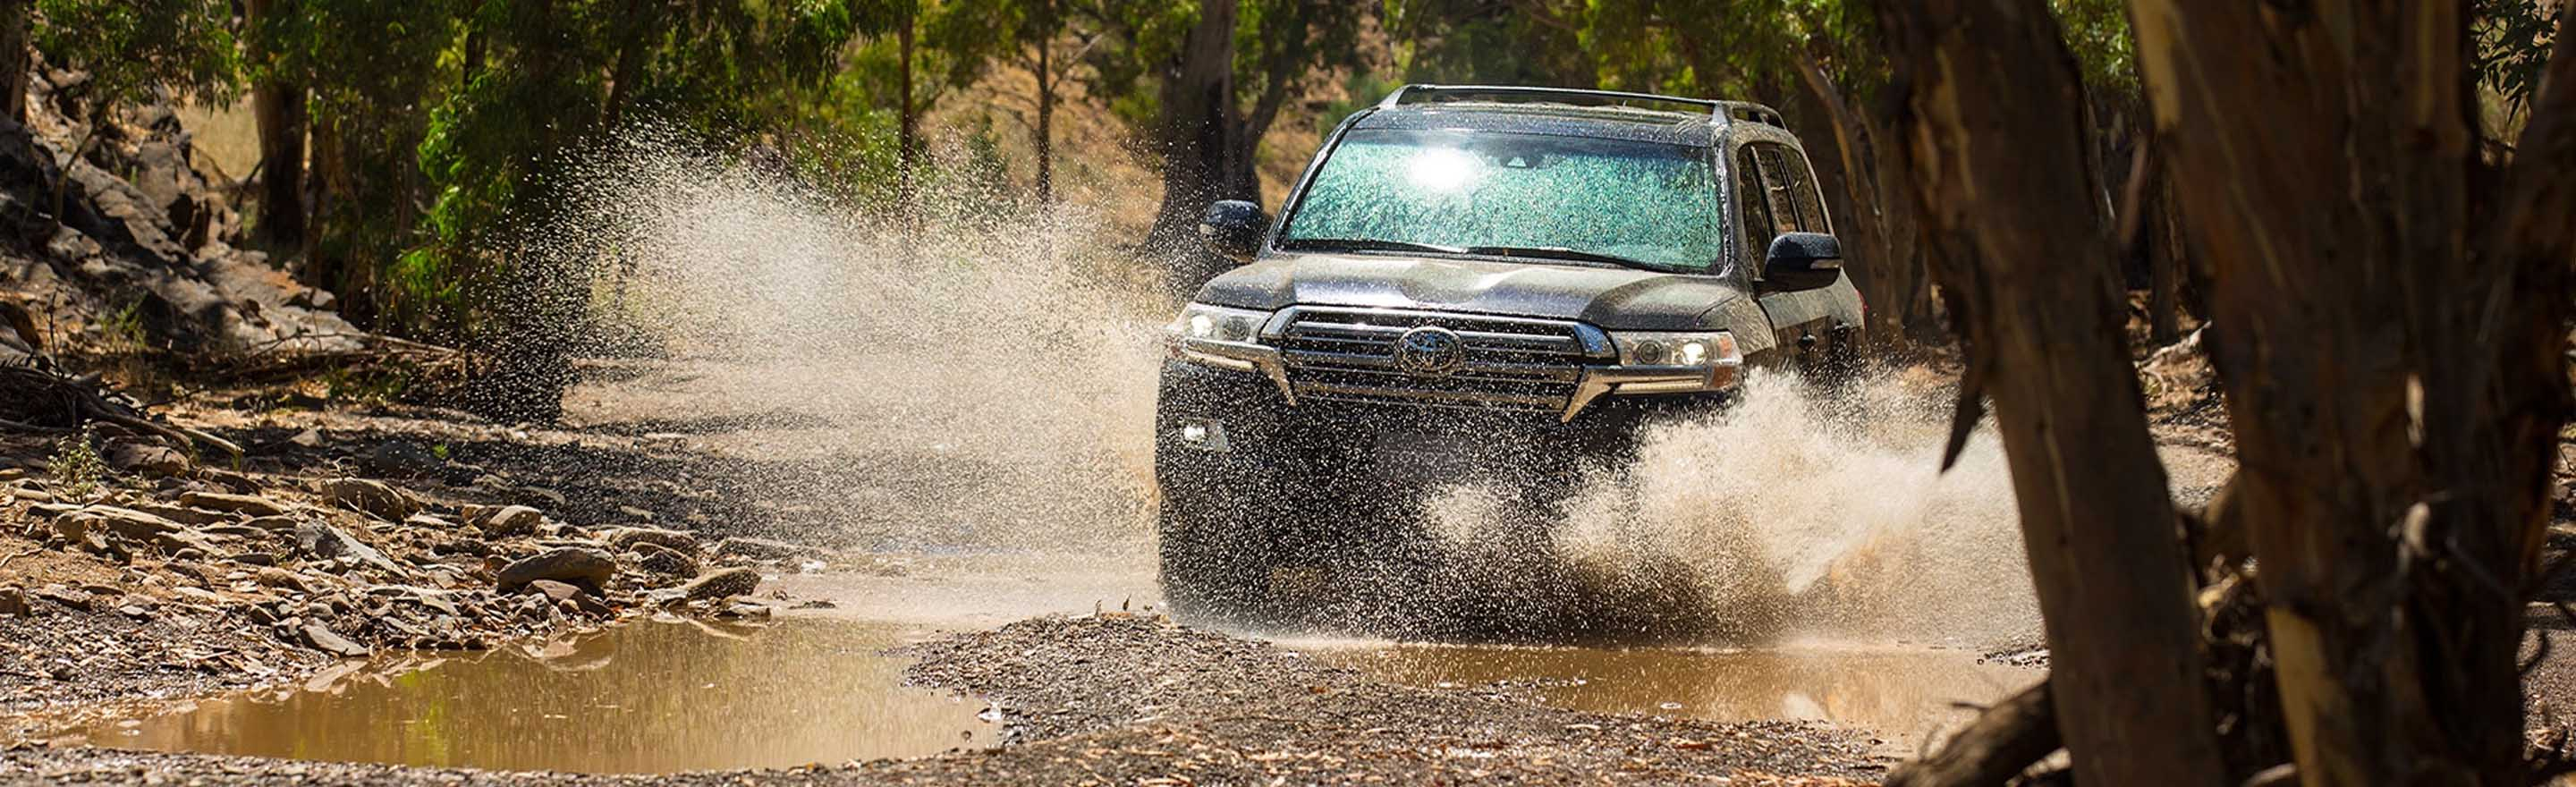 2019 Land Cruiser On Road at Durant Toyota